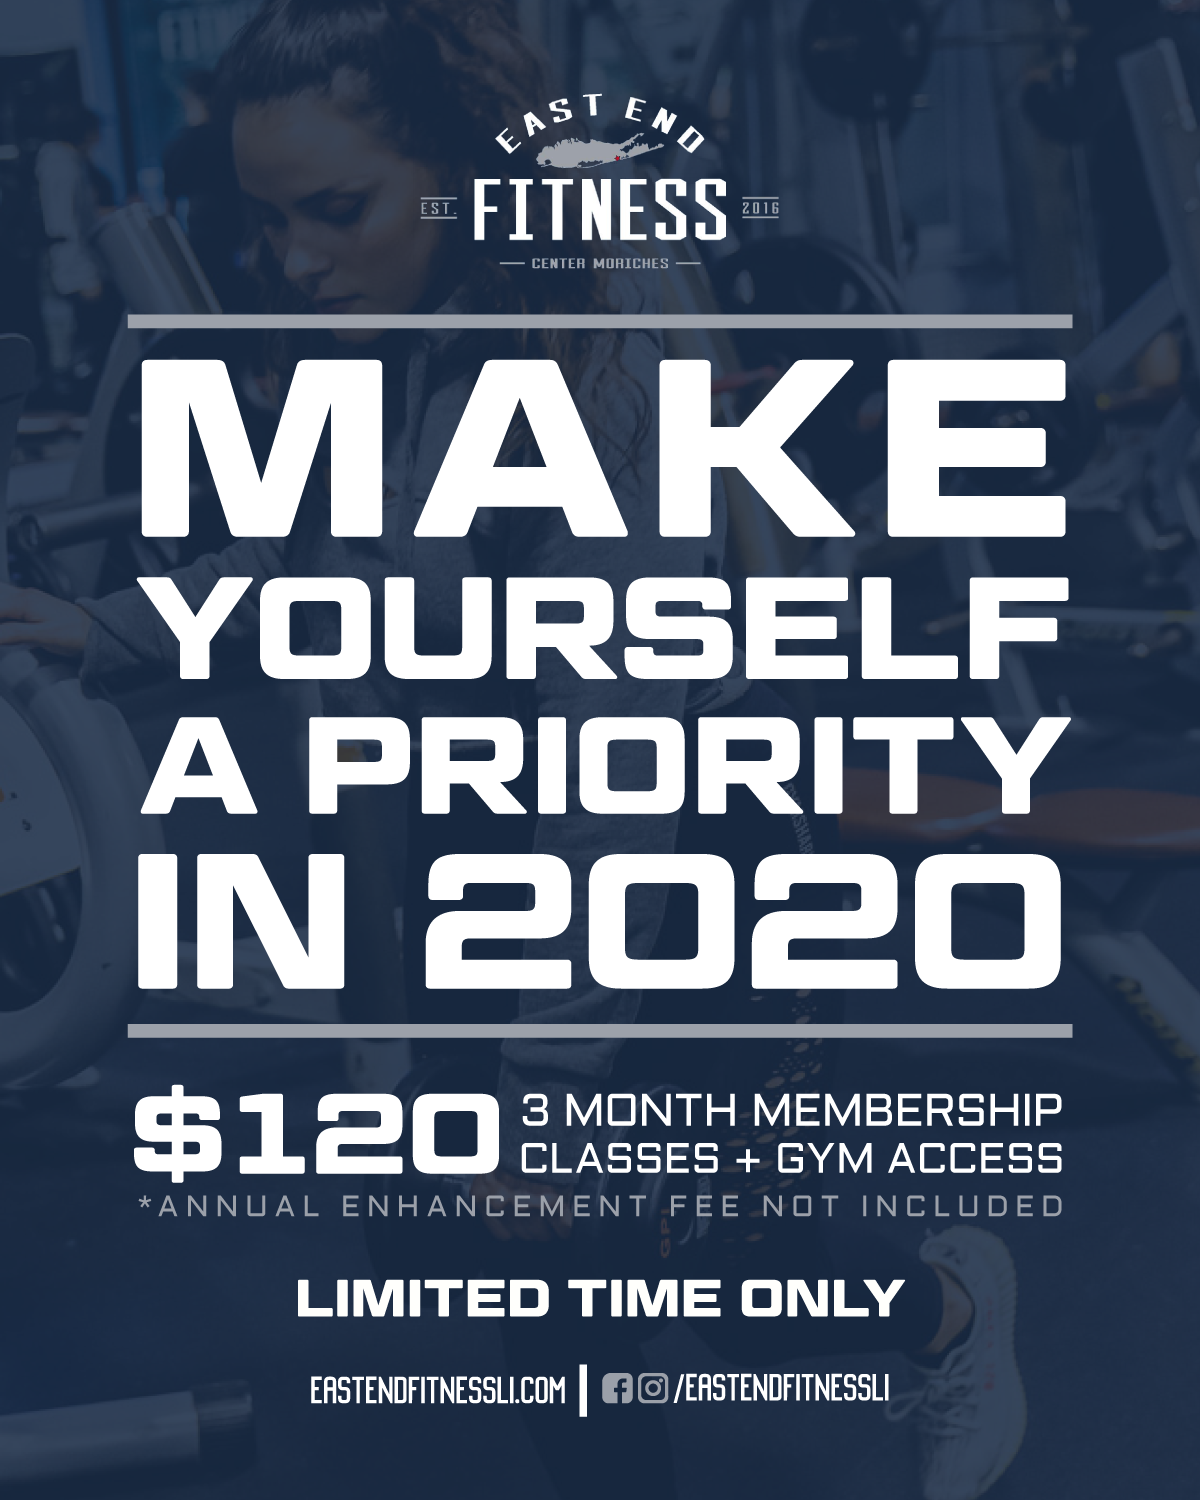 Flyer for Making yourself a priority in 2020, $120 for a 3 month membership classes and gym access, annual enhancement fee not included - limited time only.